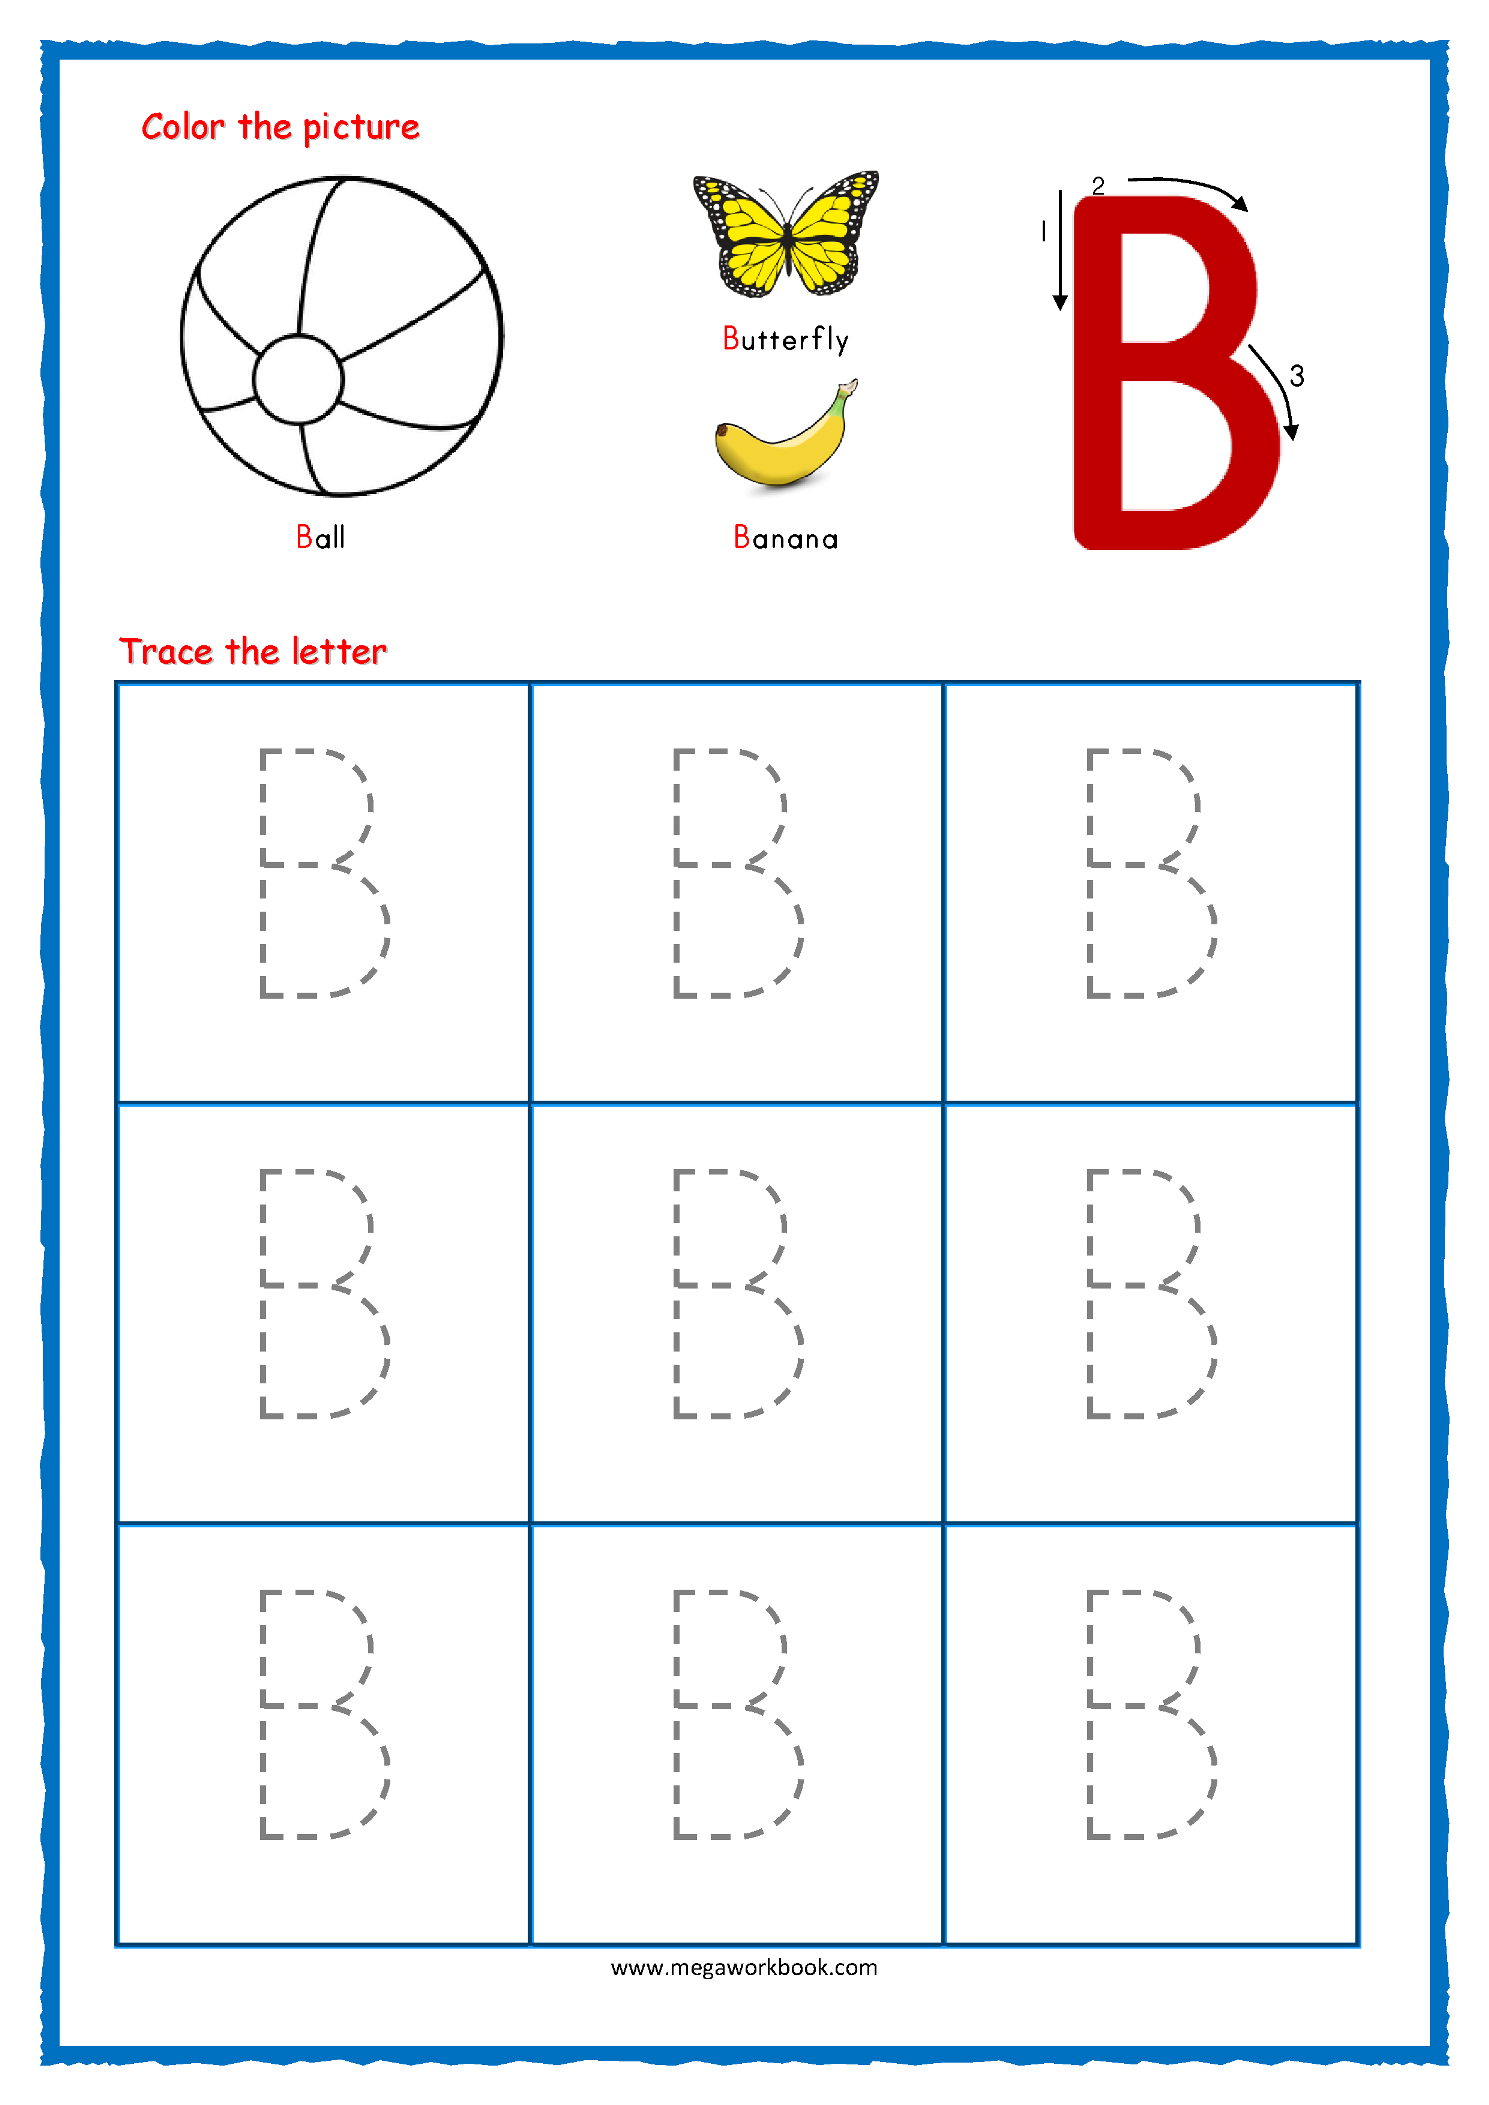 Coloring Book : Letter Tracingts Free Printable Coloring intended for Letter Tracing Worksheets For Free